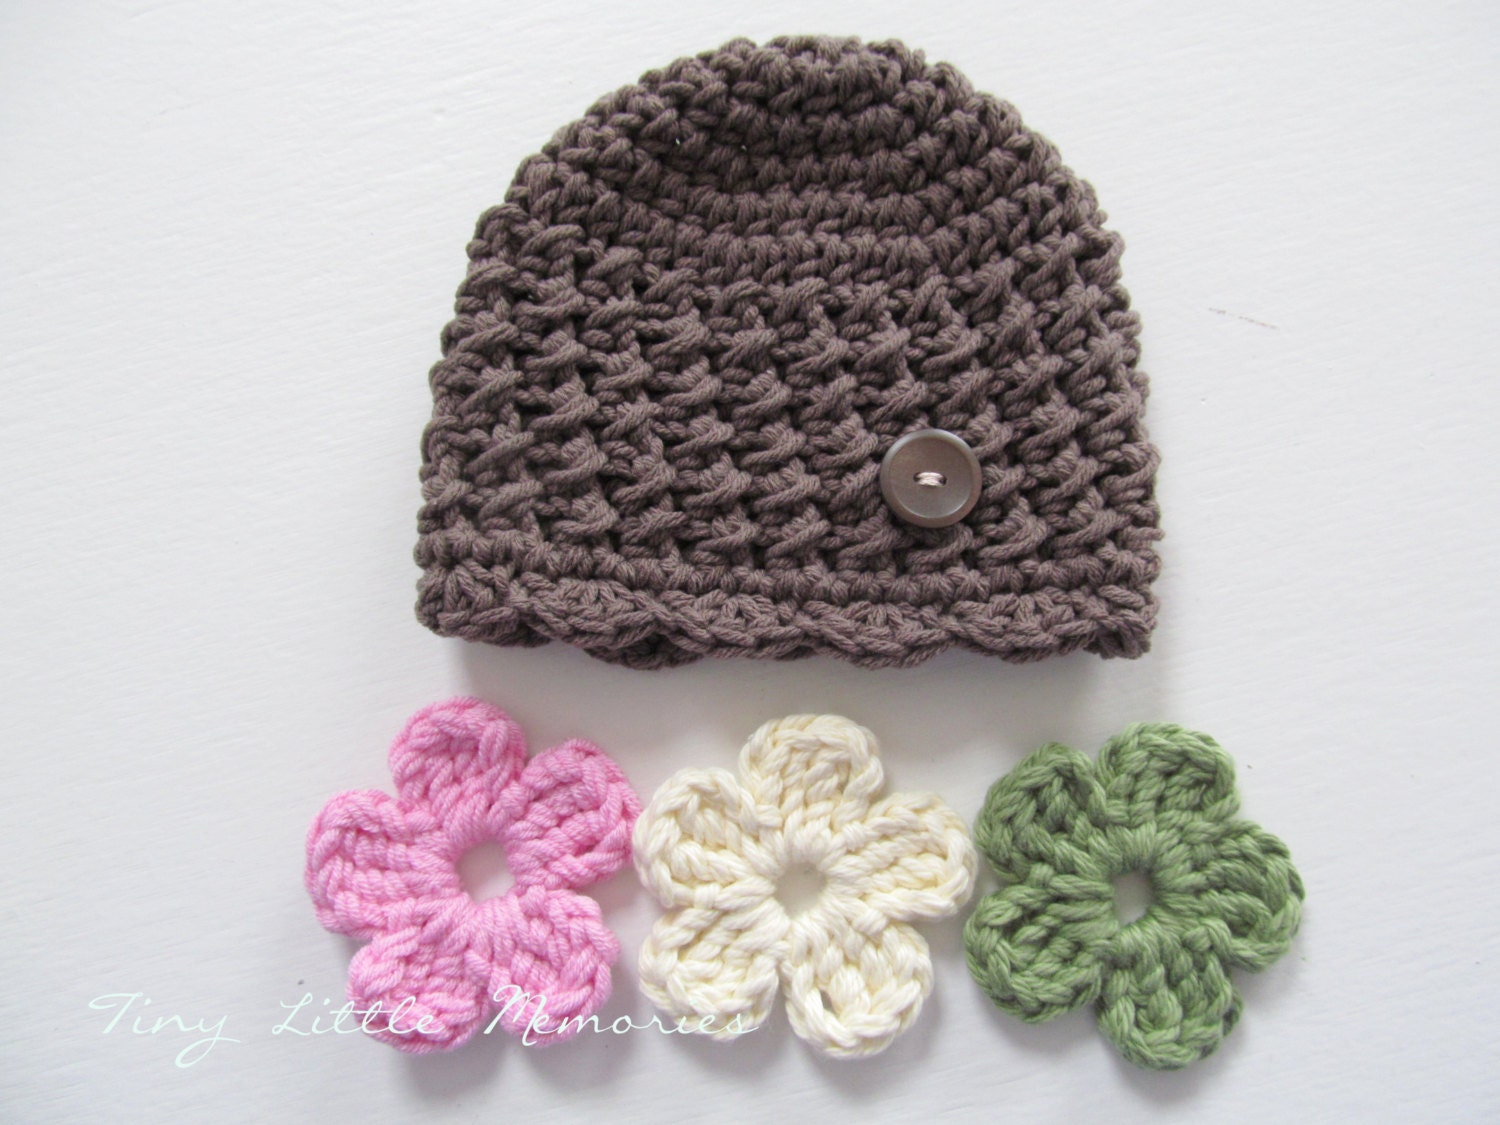 Baby Crochet Hat With Interchangeable Flowers 5 Included